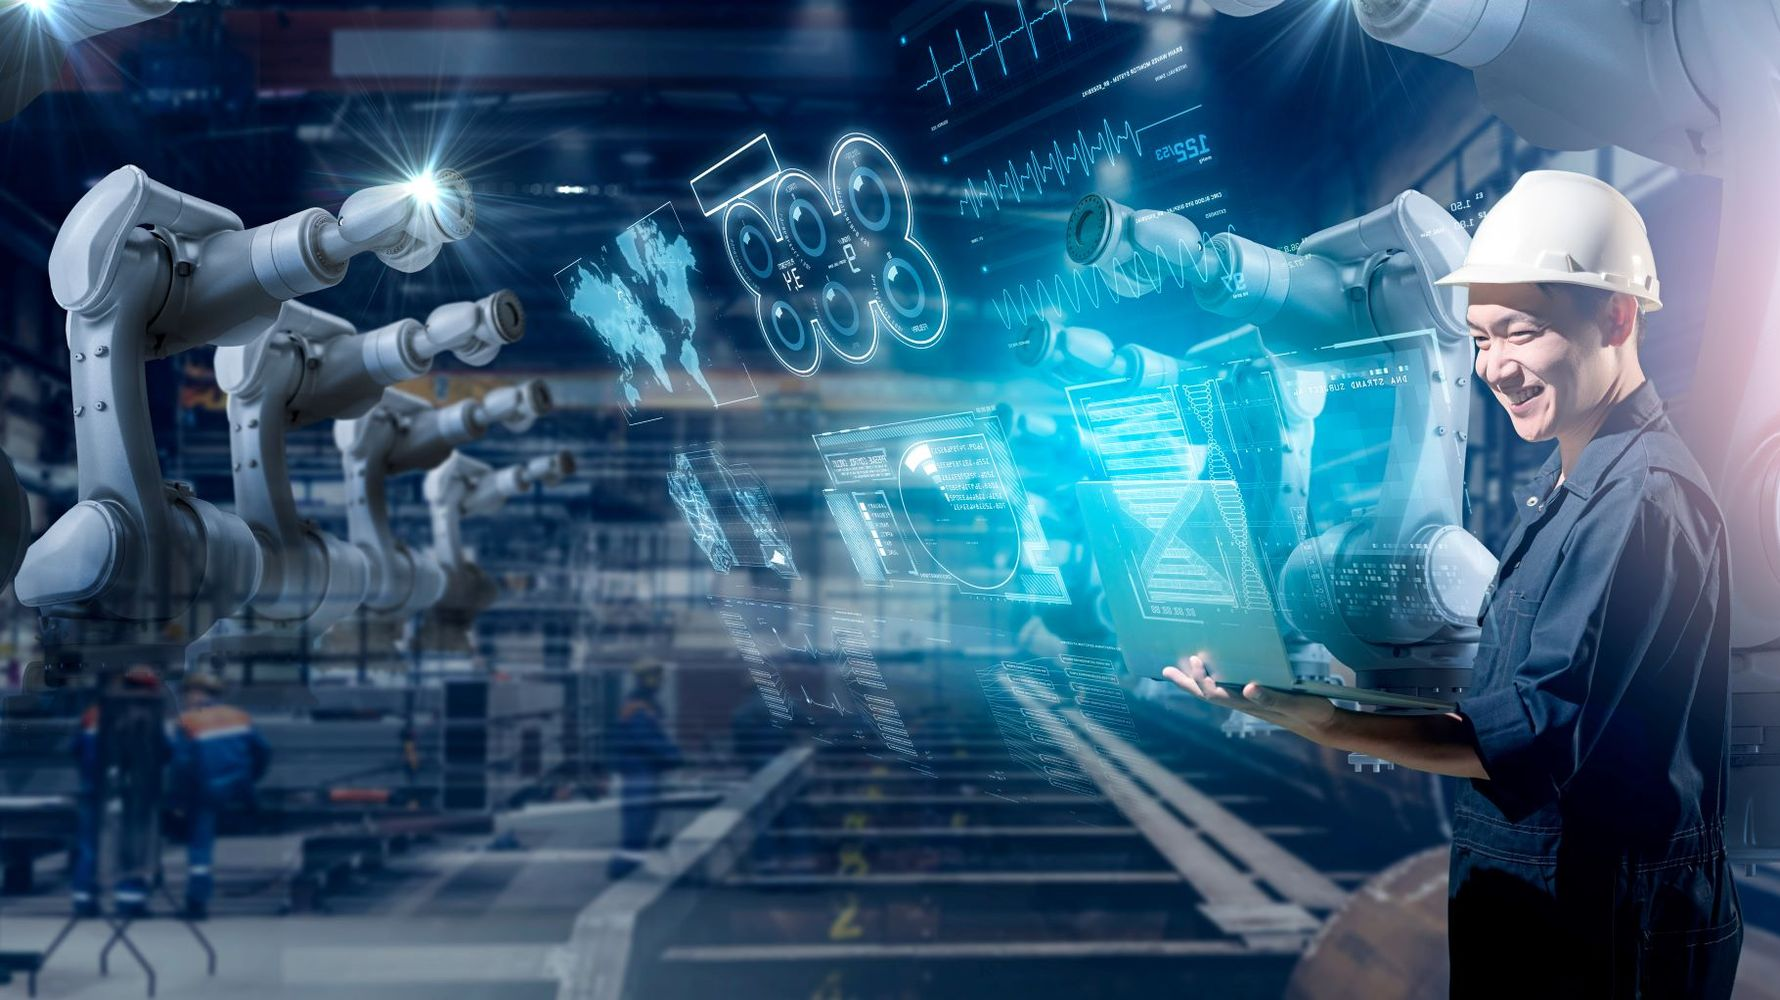 The new playmaker of digitization has launched the world